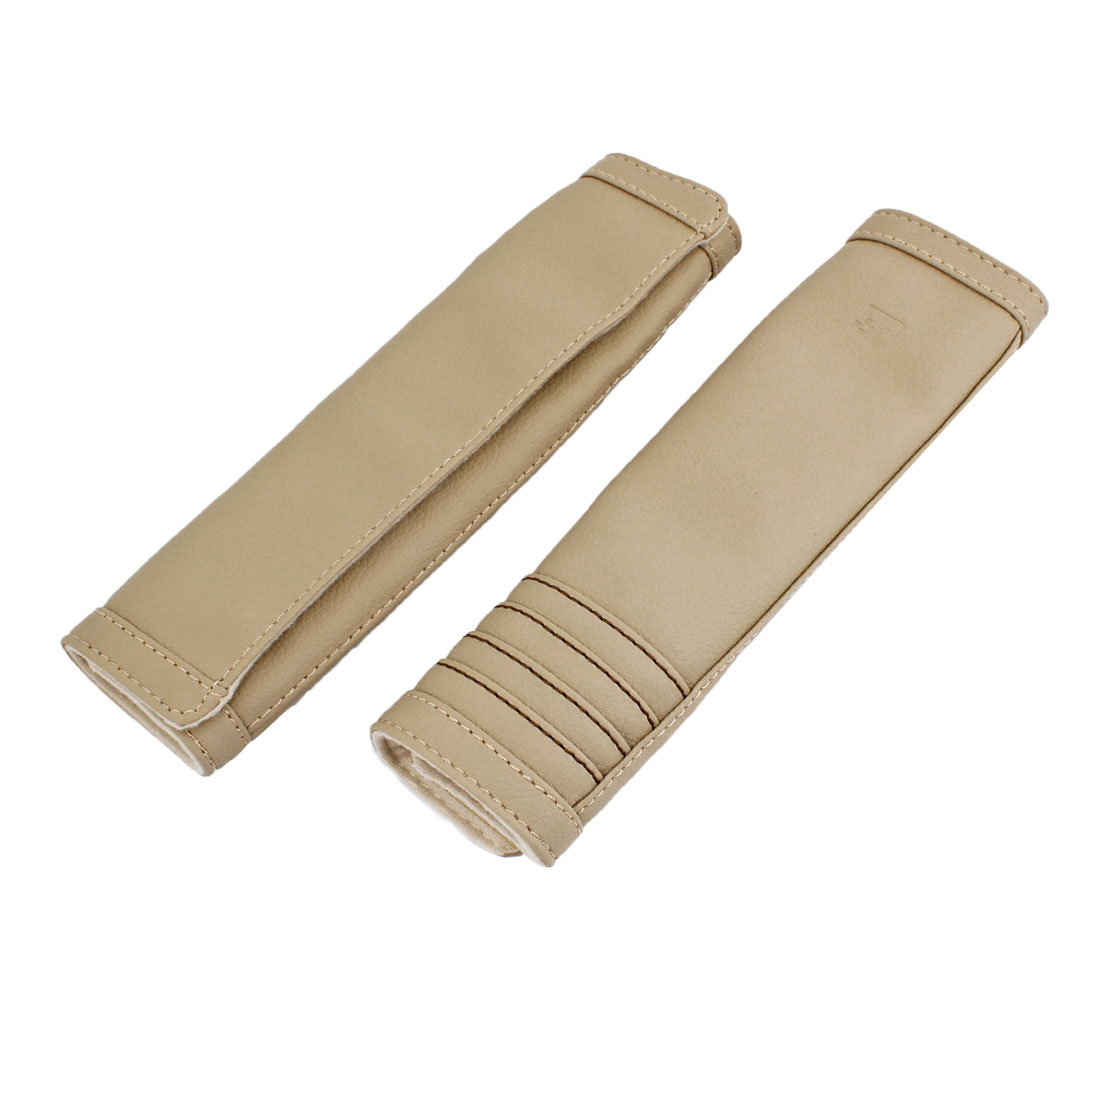 2 Pcs Beige Faux Leather Car Safety Seat Belt Cover Shoulder Protector Pad